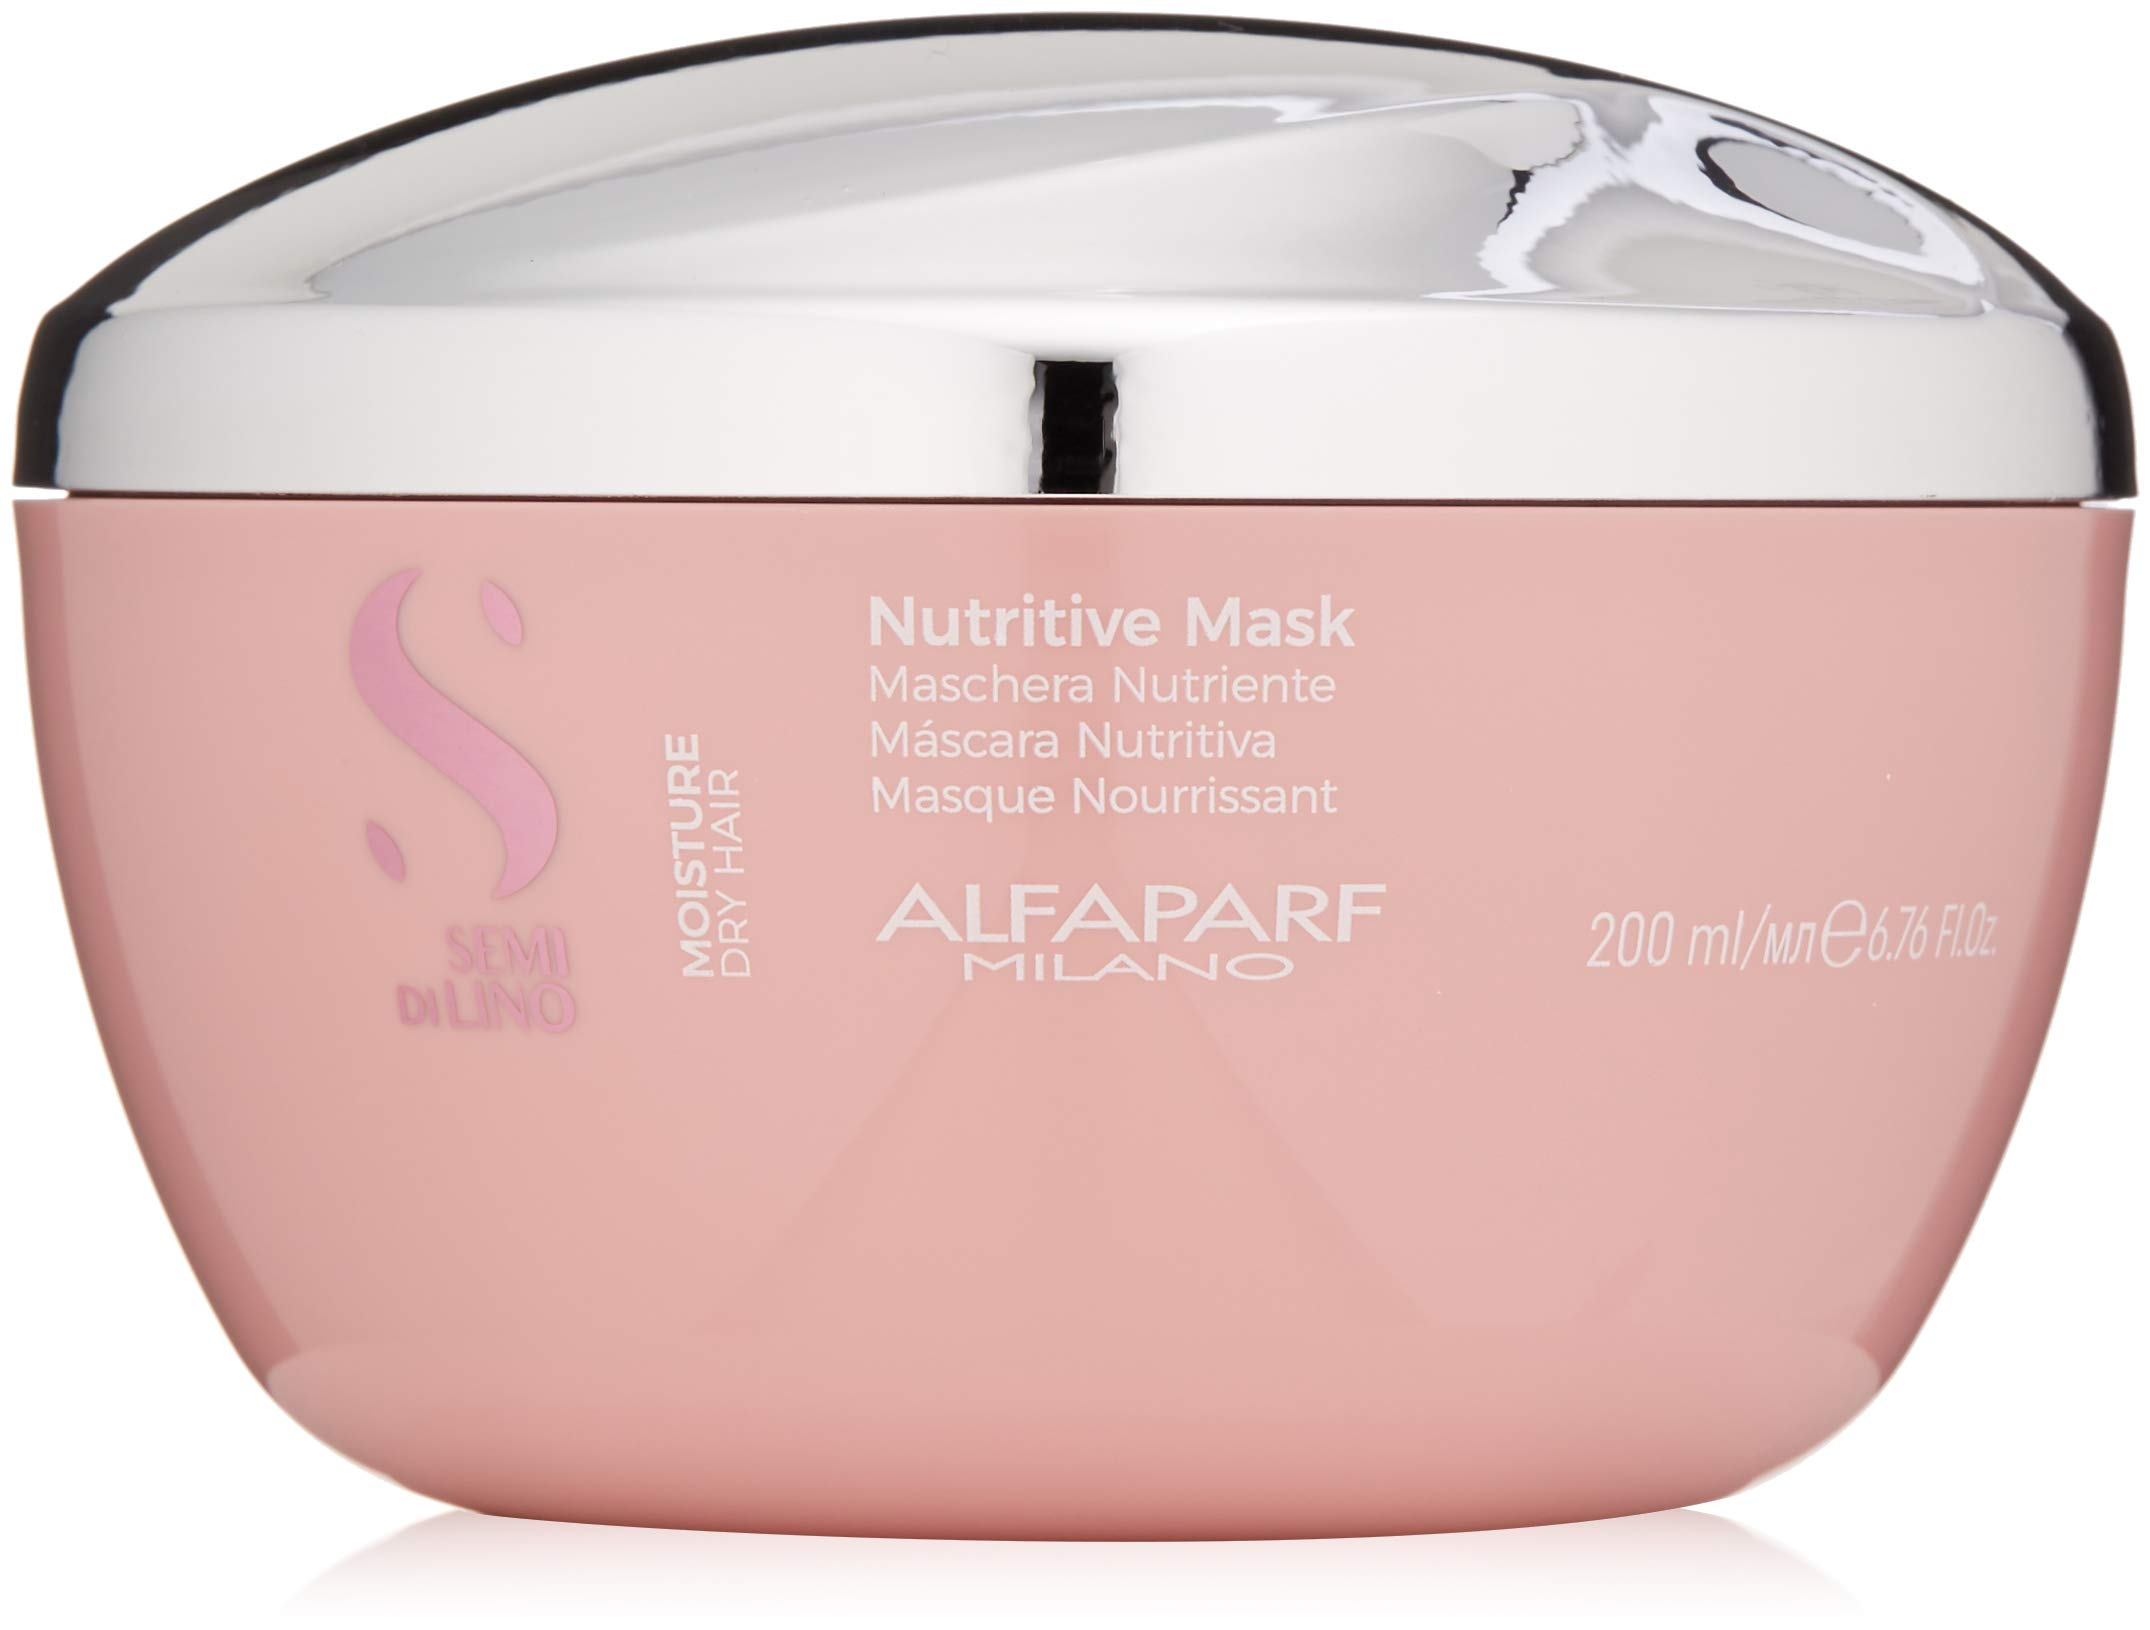 Alfaparf Milano Semi Di Lino Moisture Nutritive Mask for Dry Hair - Safe on Color Treated Hair - Sulfate, SLS, Paraben and Paraffin Free - Professional Salon Quality